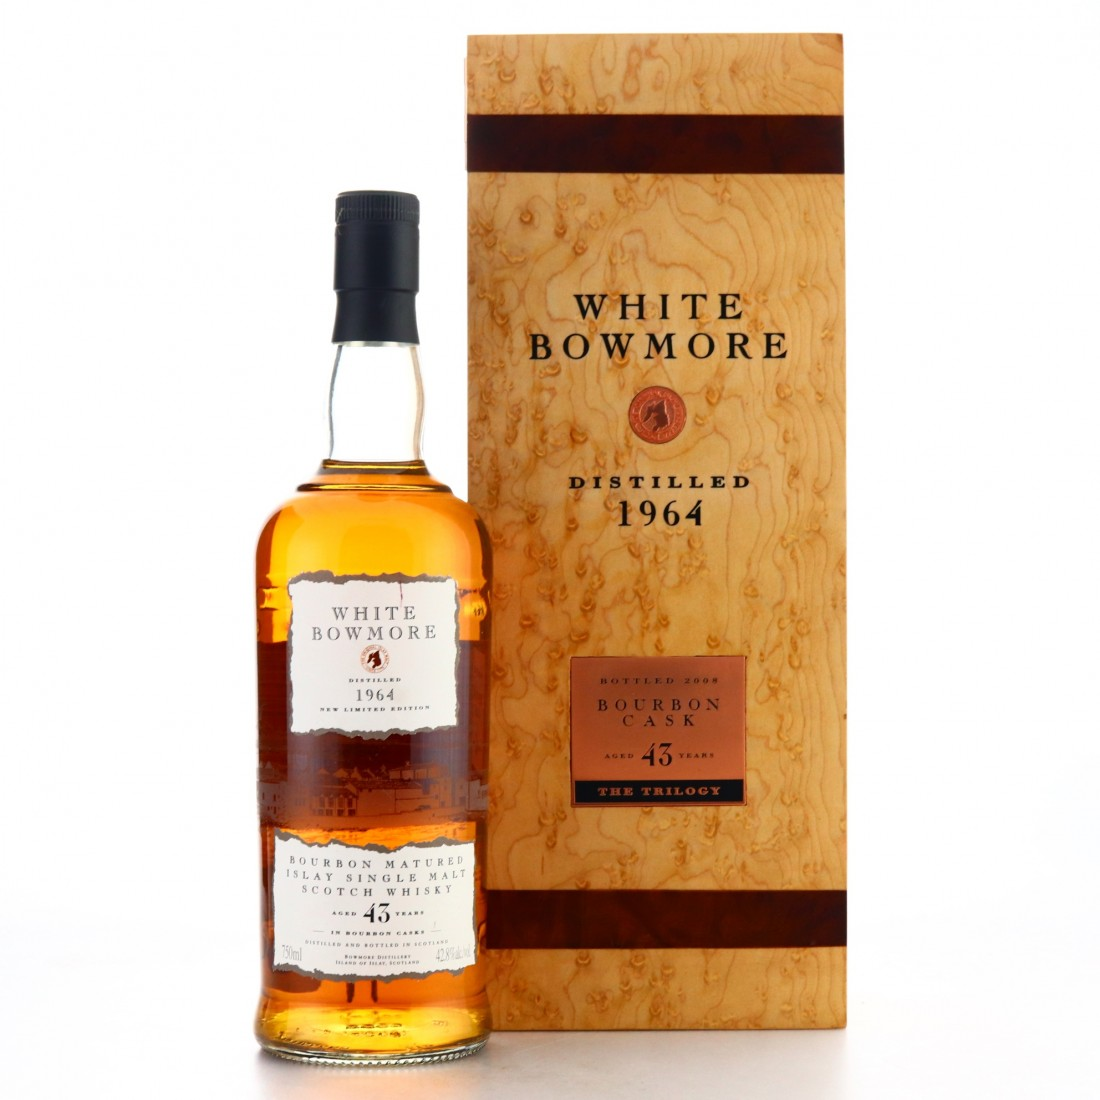 Bowmore 1964 White Bowmore 43 Year Old 75cl / US Import